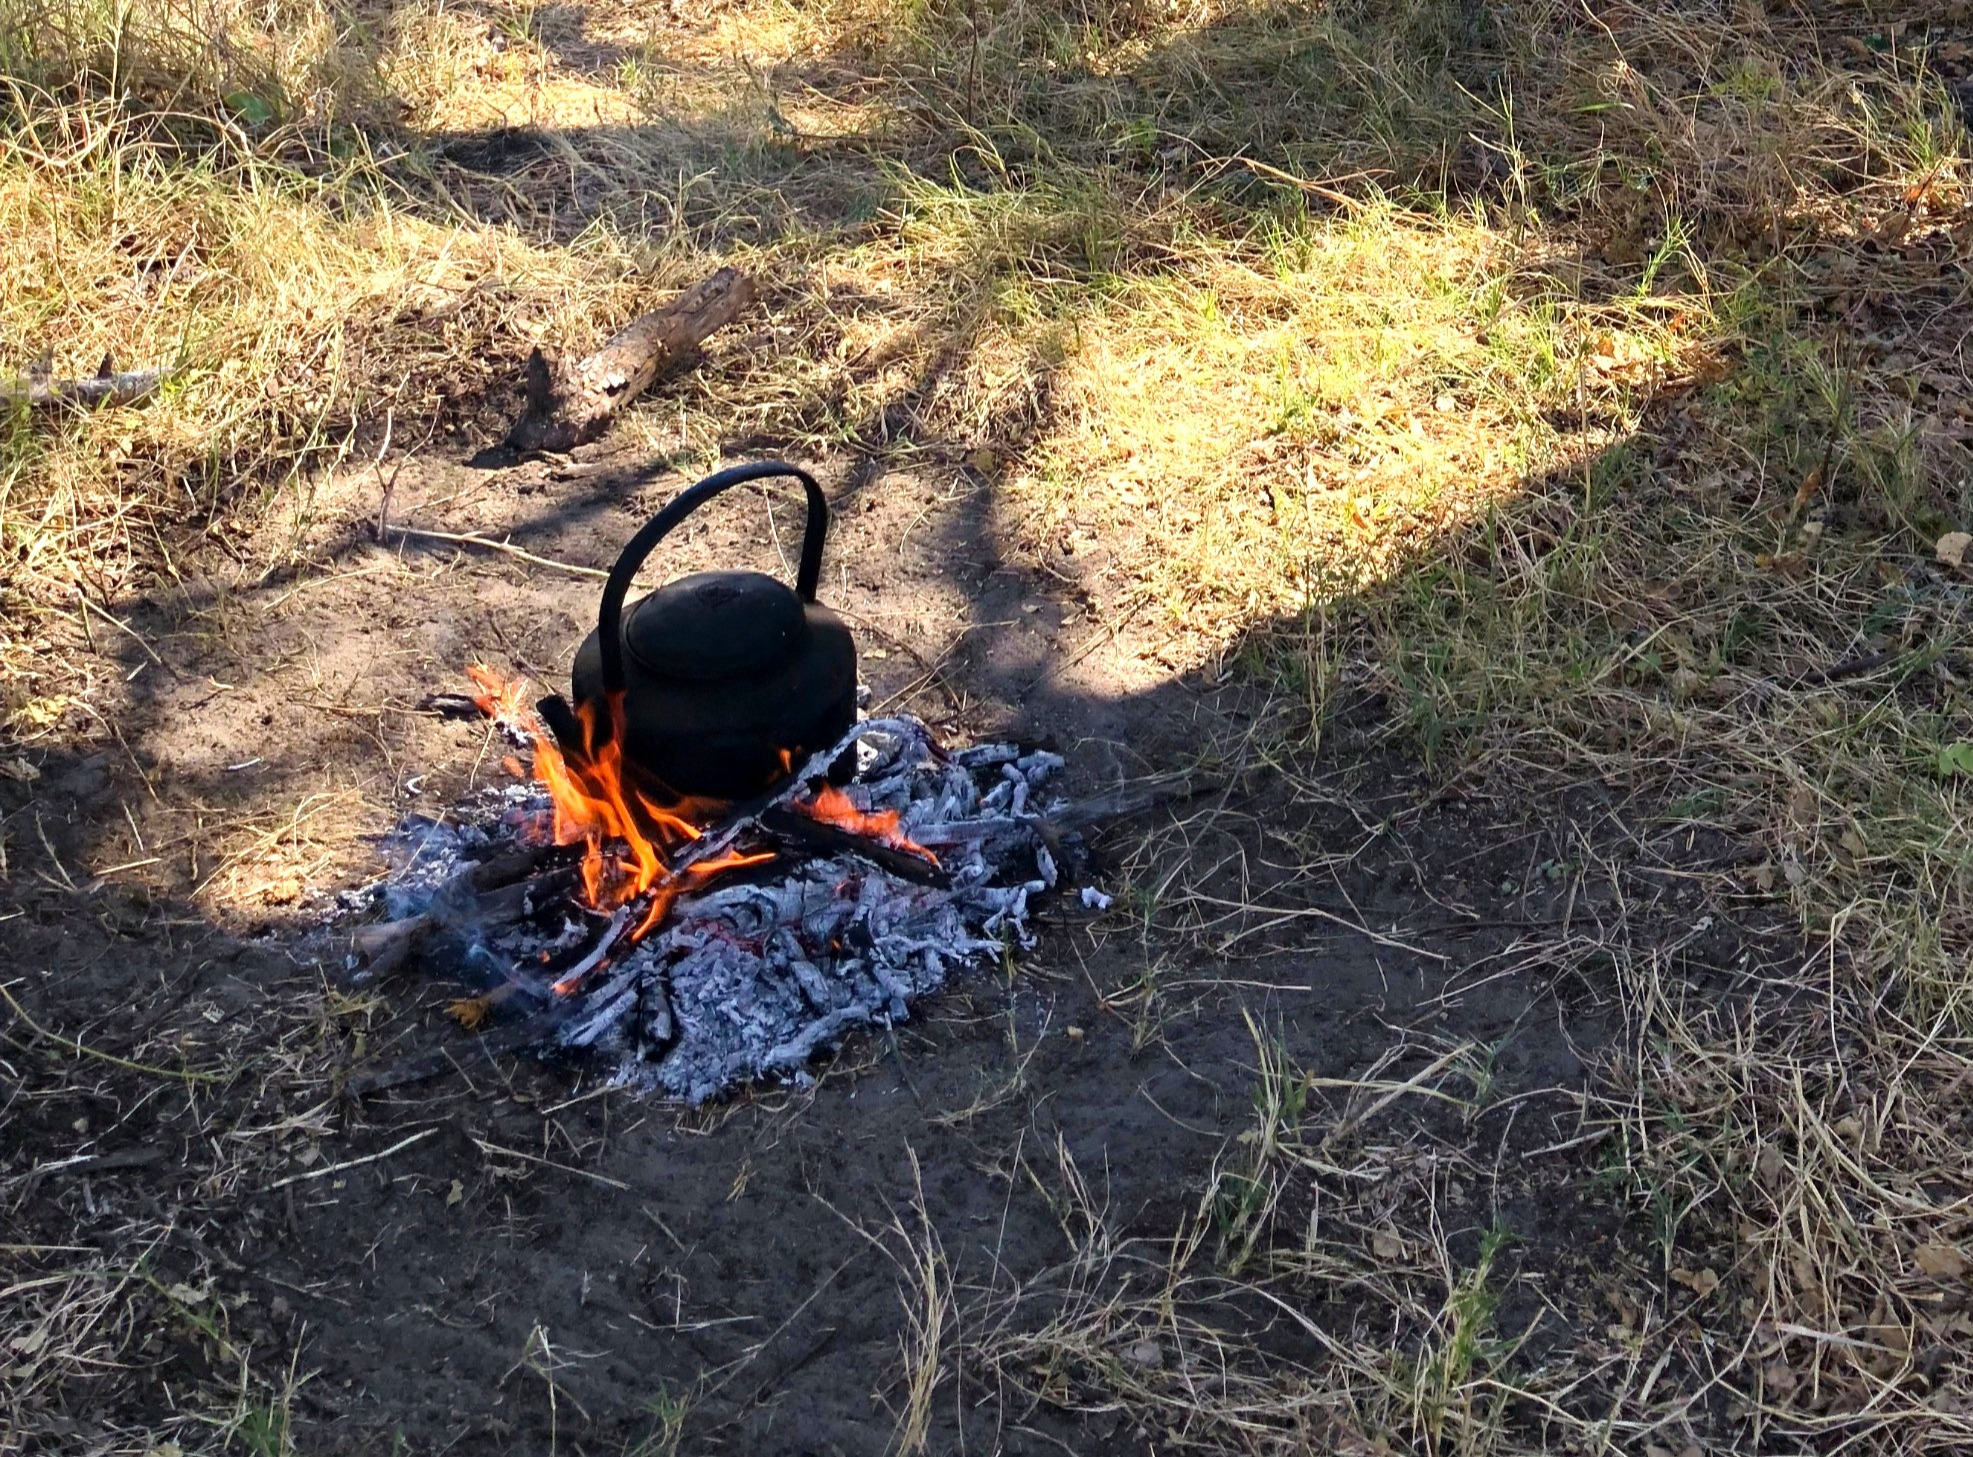 Kettle_on_fire_edited